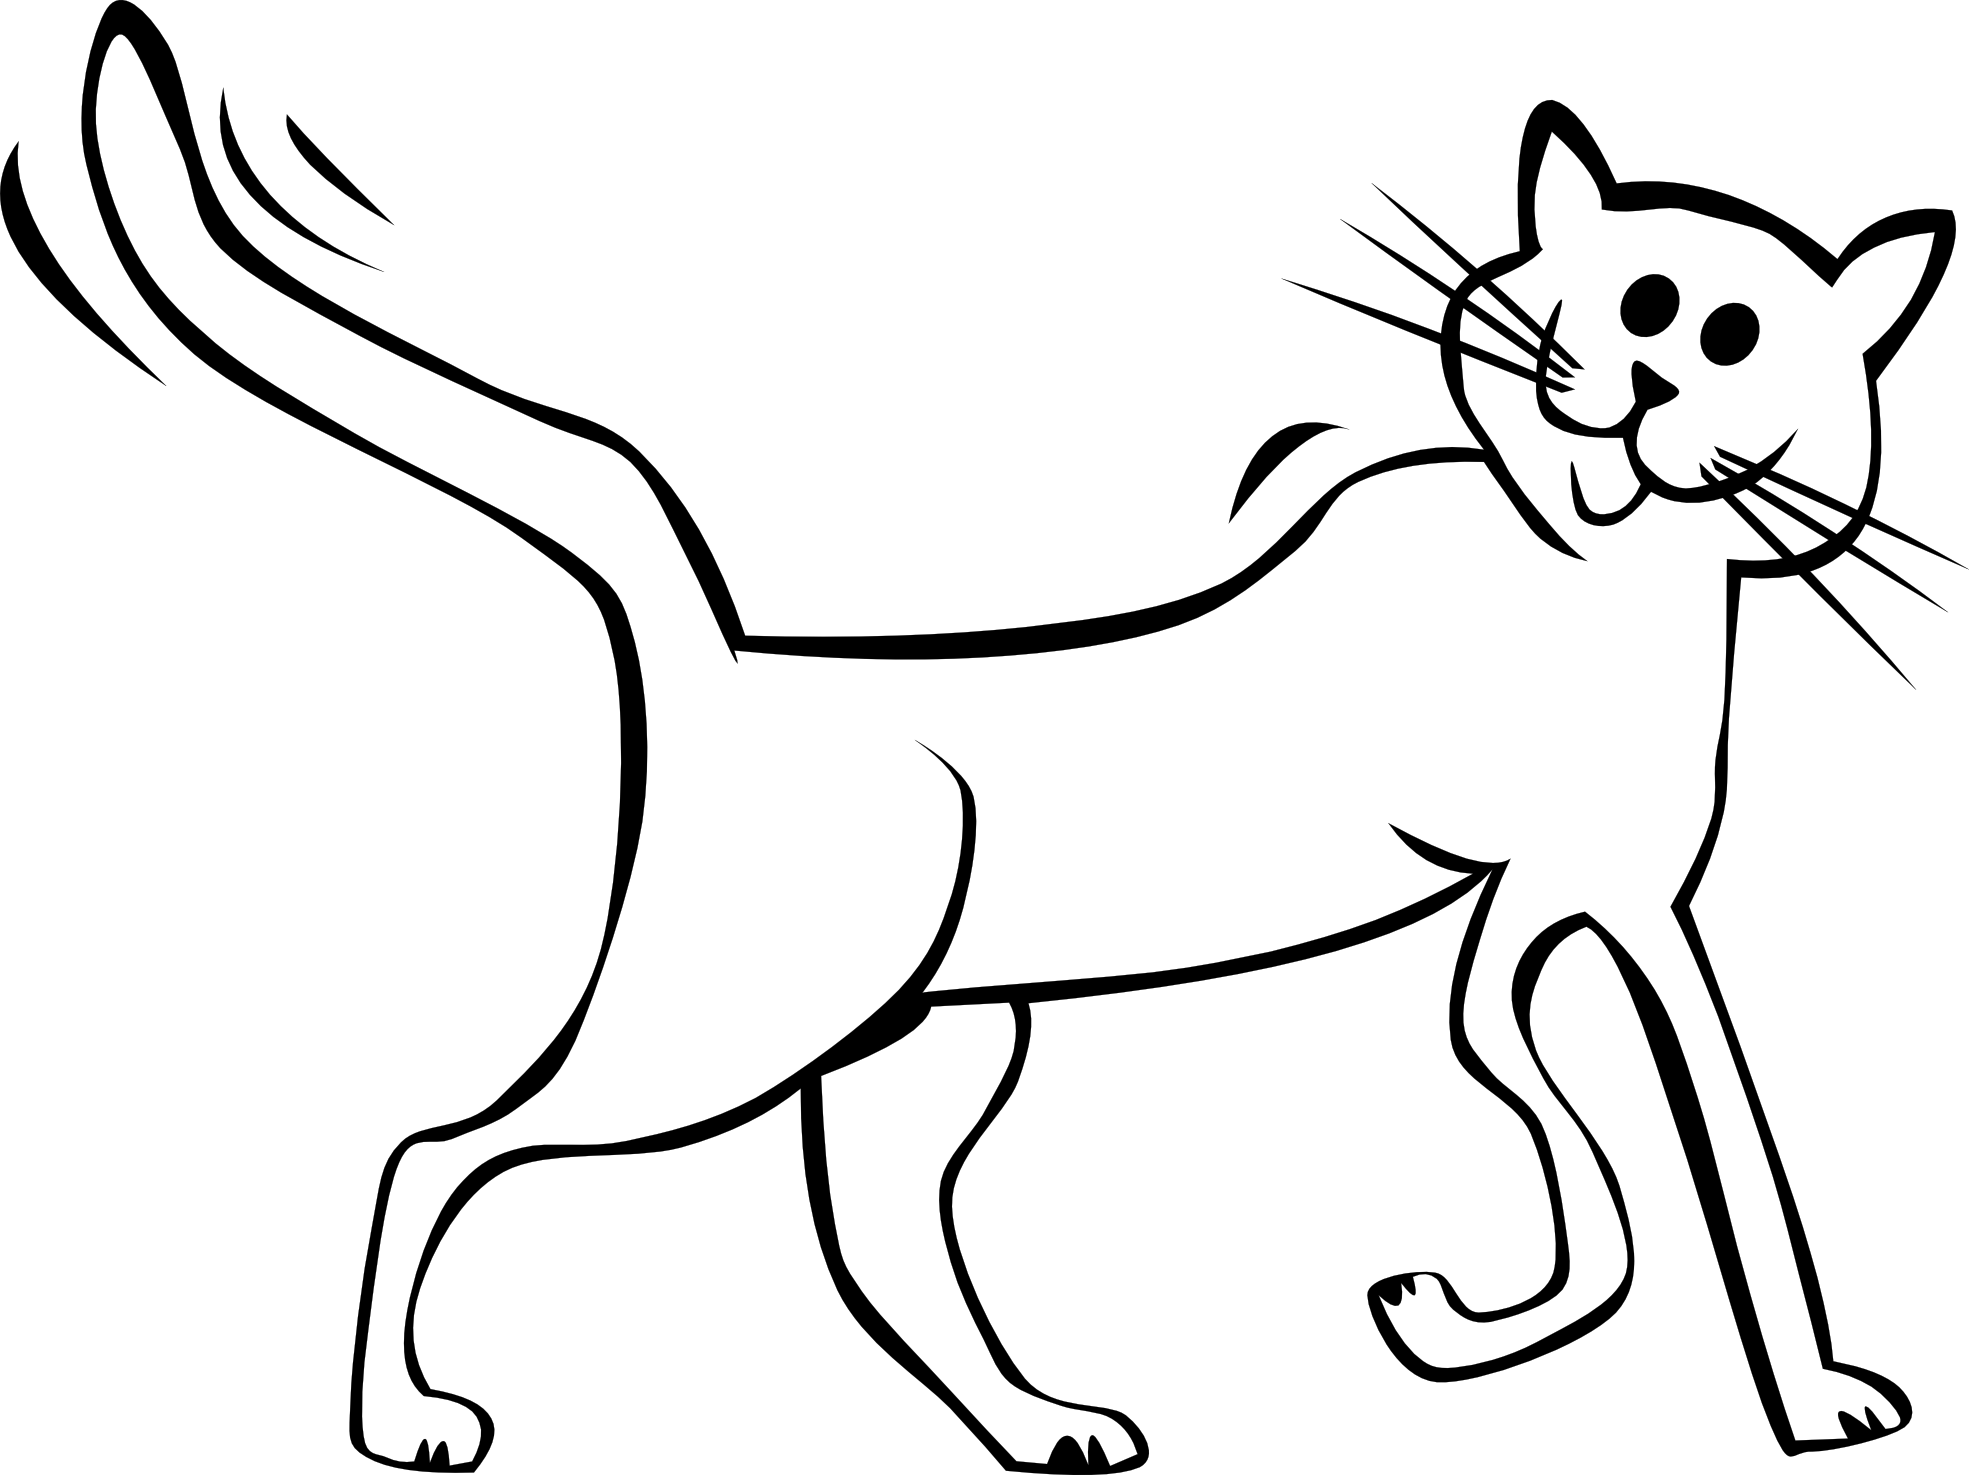 Free Cartoon Black And White Cat, Download Free Clip Art, Free Clip.